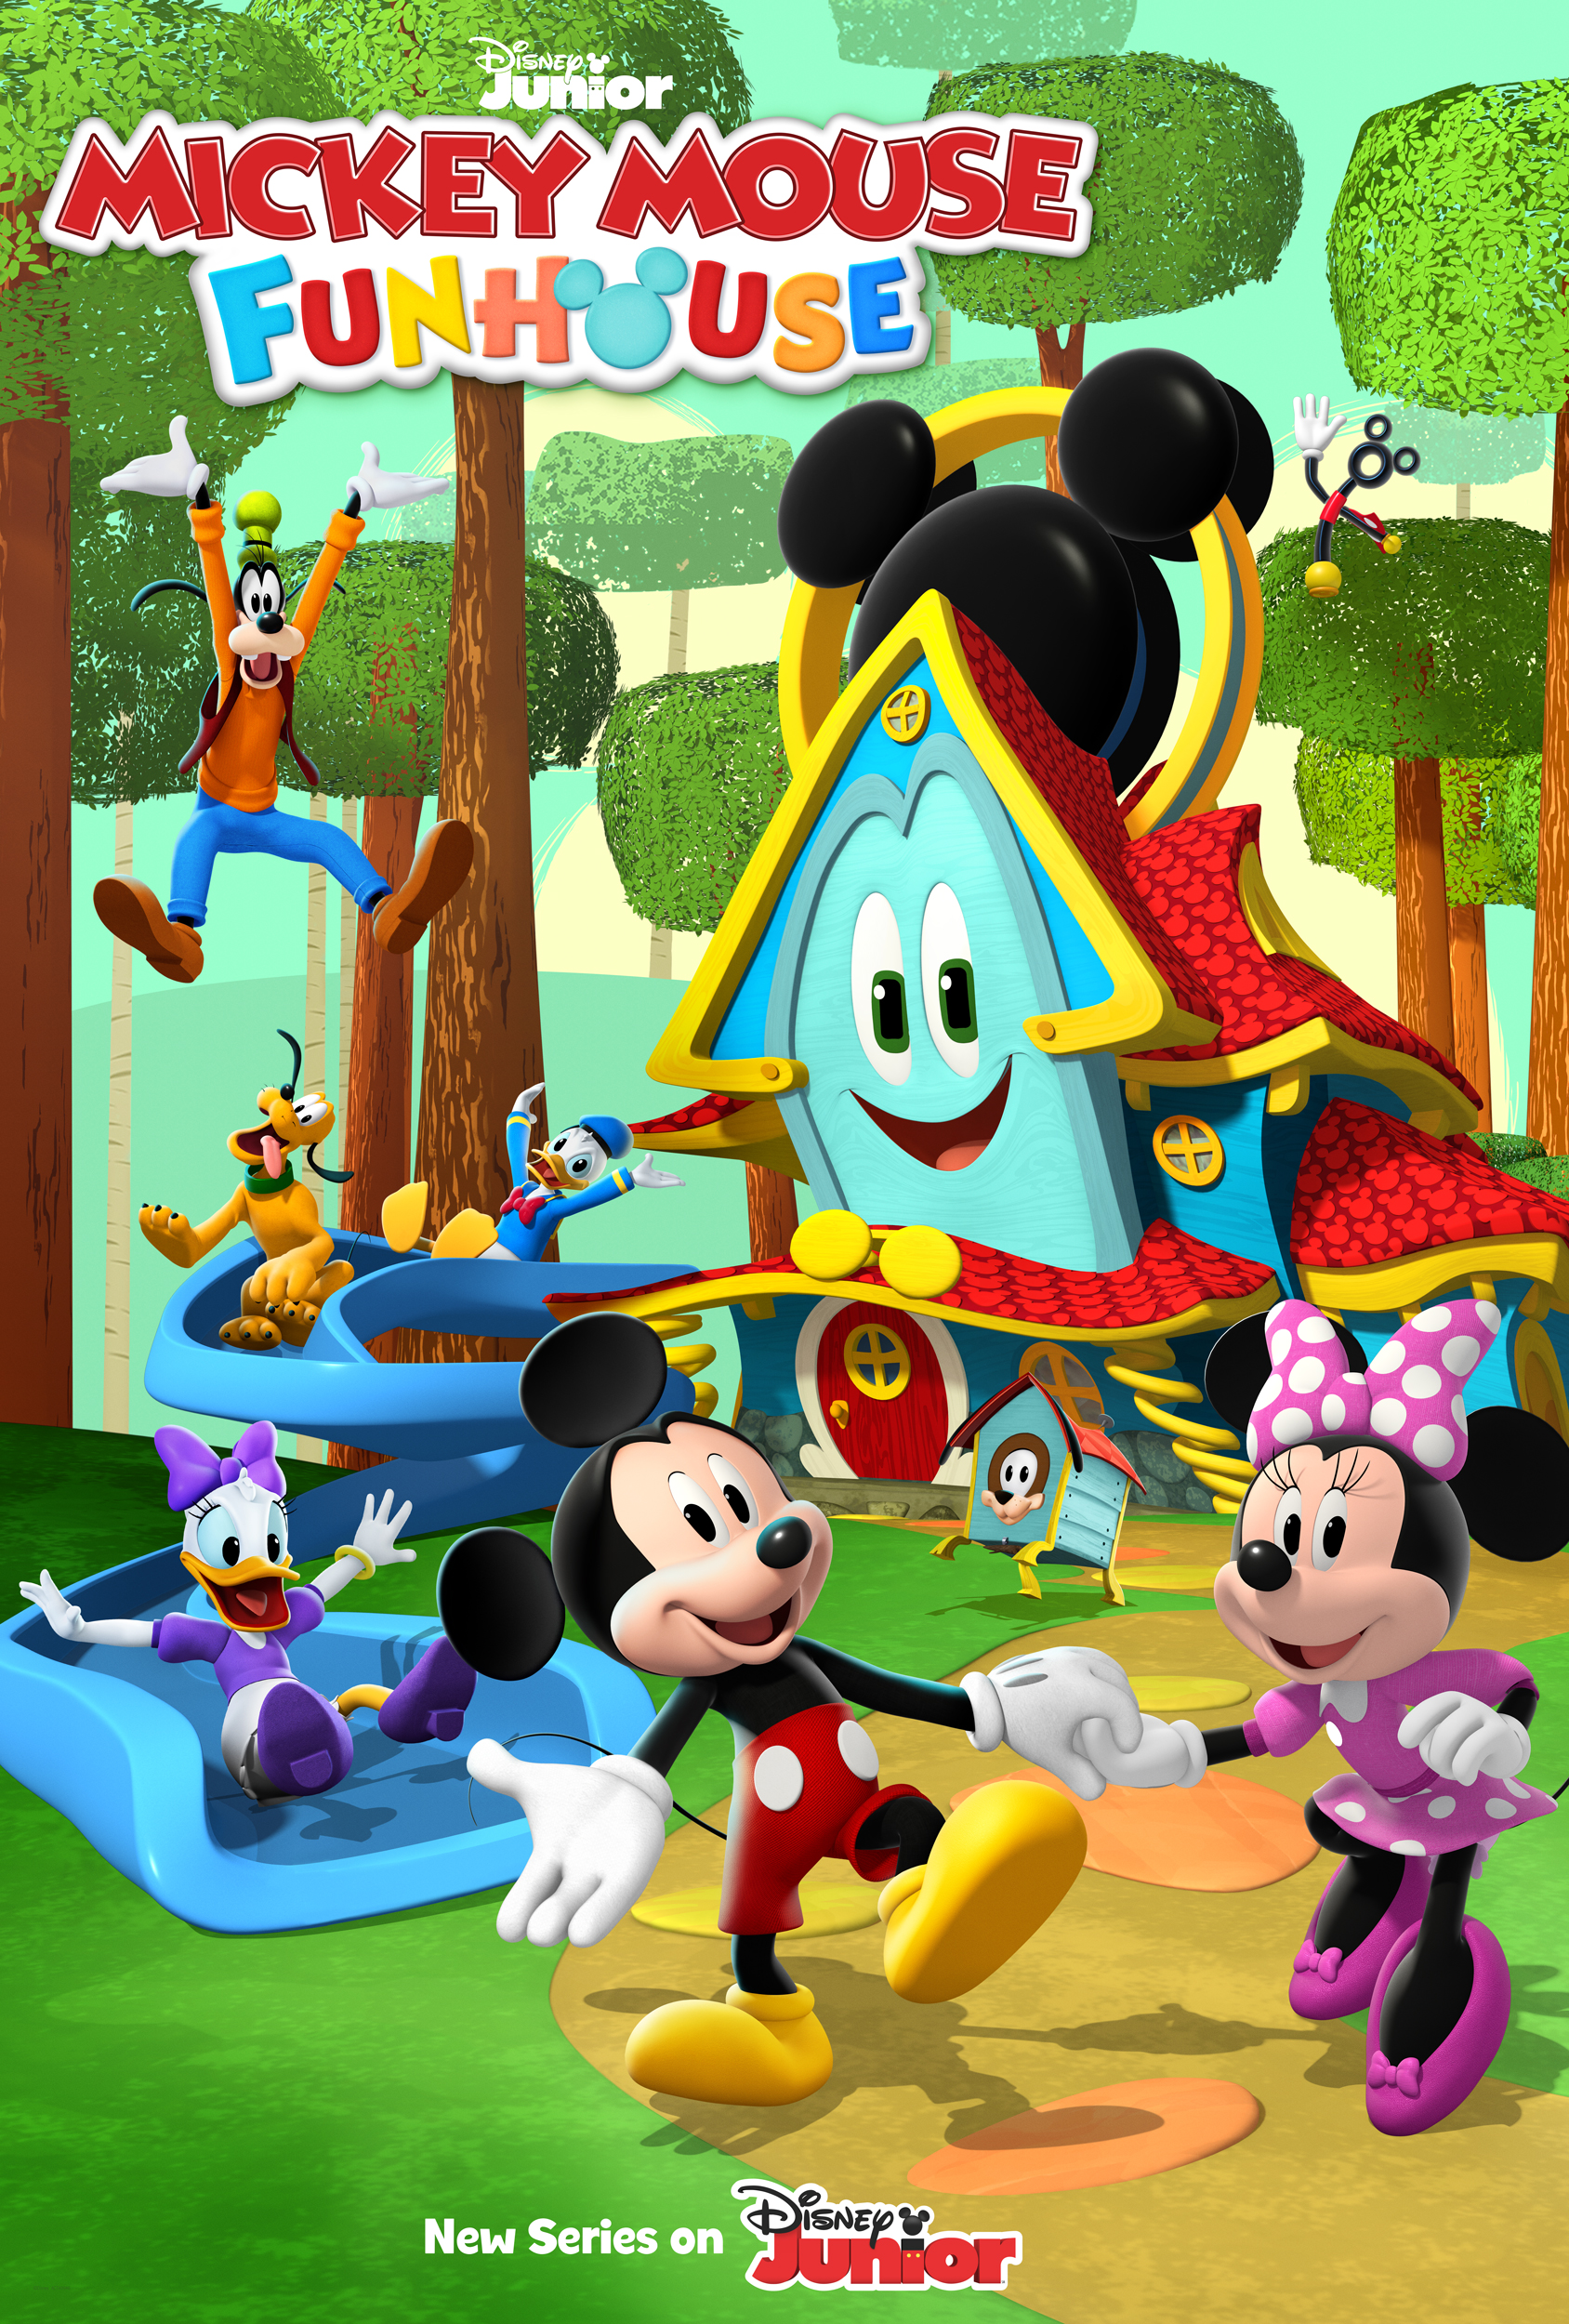 """Mickey Mouse Funhouse"""" is a whimsical animated series for preschoolers and their families featuring Disney's #1 star, Mickey Mouse, and his pals - Minnie, Donald, Daisy, Goofy and Pluto. Slated to debut in 2021, the series introduces Funny, an enchanted talking playhouse who leads the Sensational Six on imaginative adventures."""